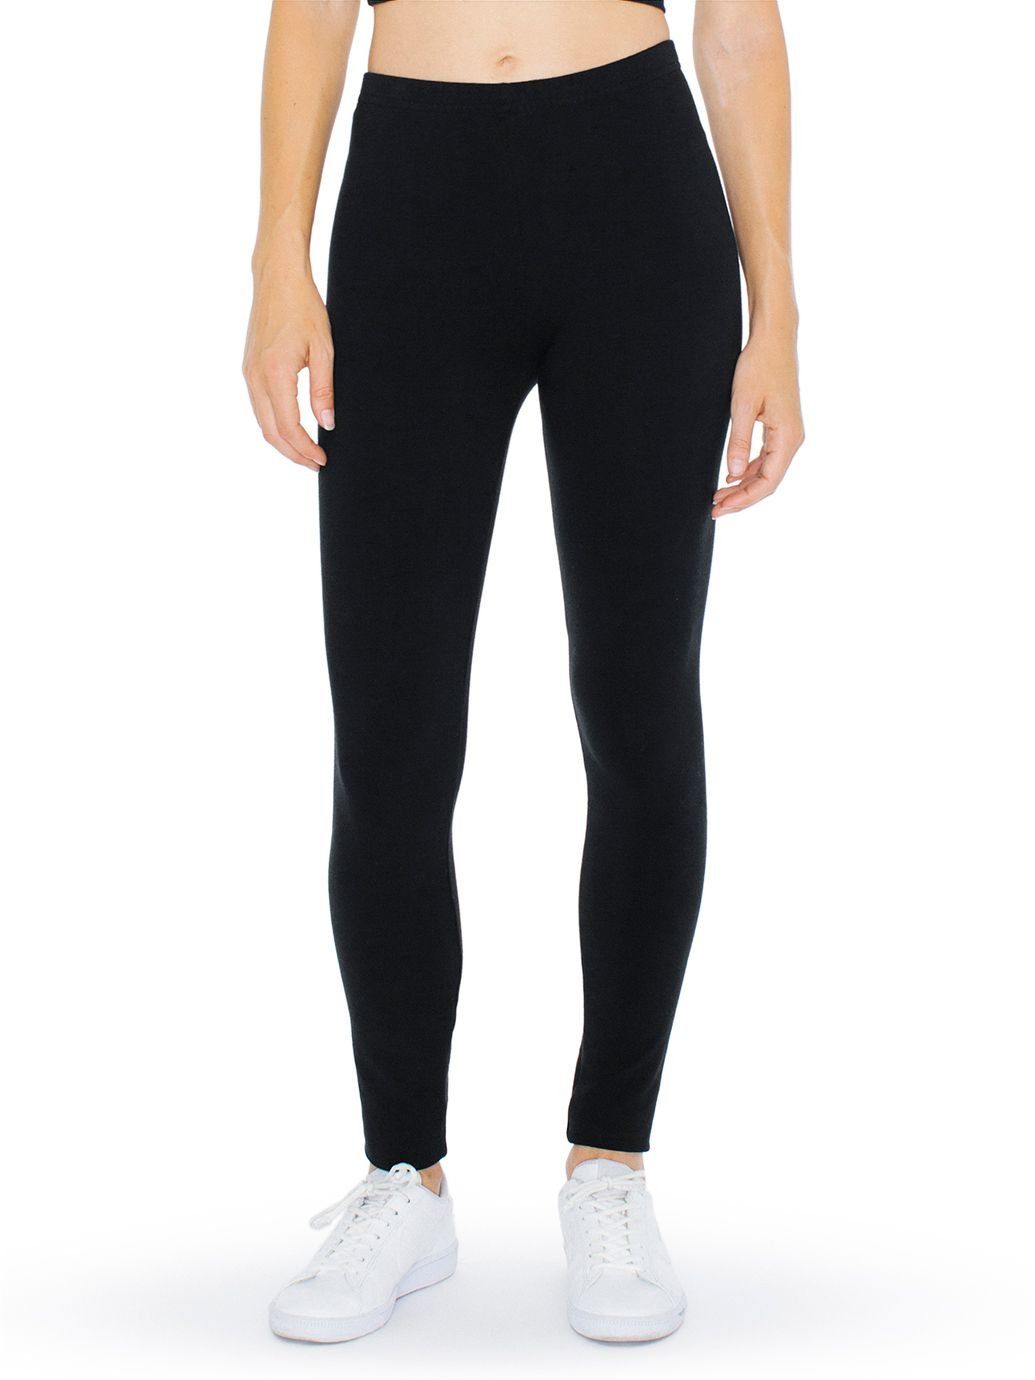 American Apparel Women's Winter Leggings, Black - X-Large